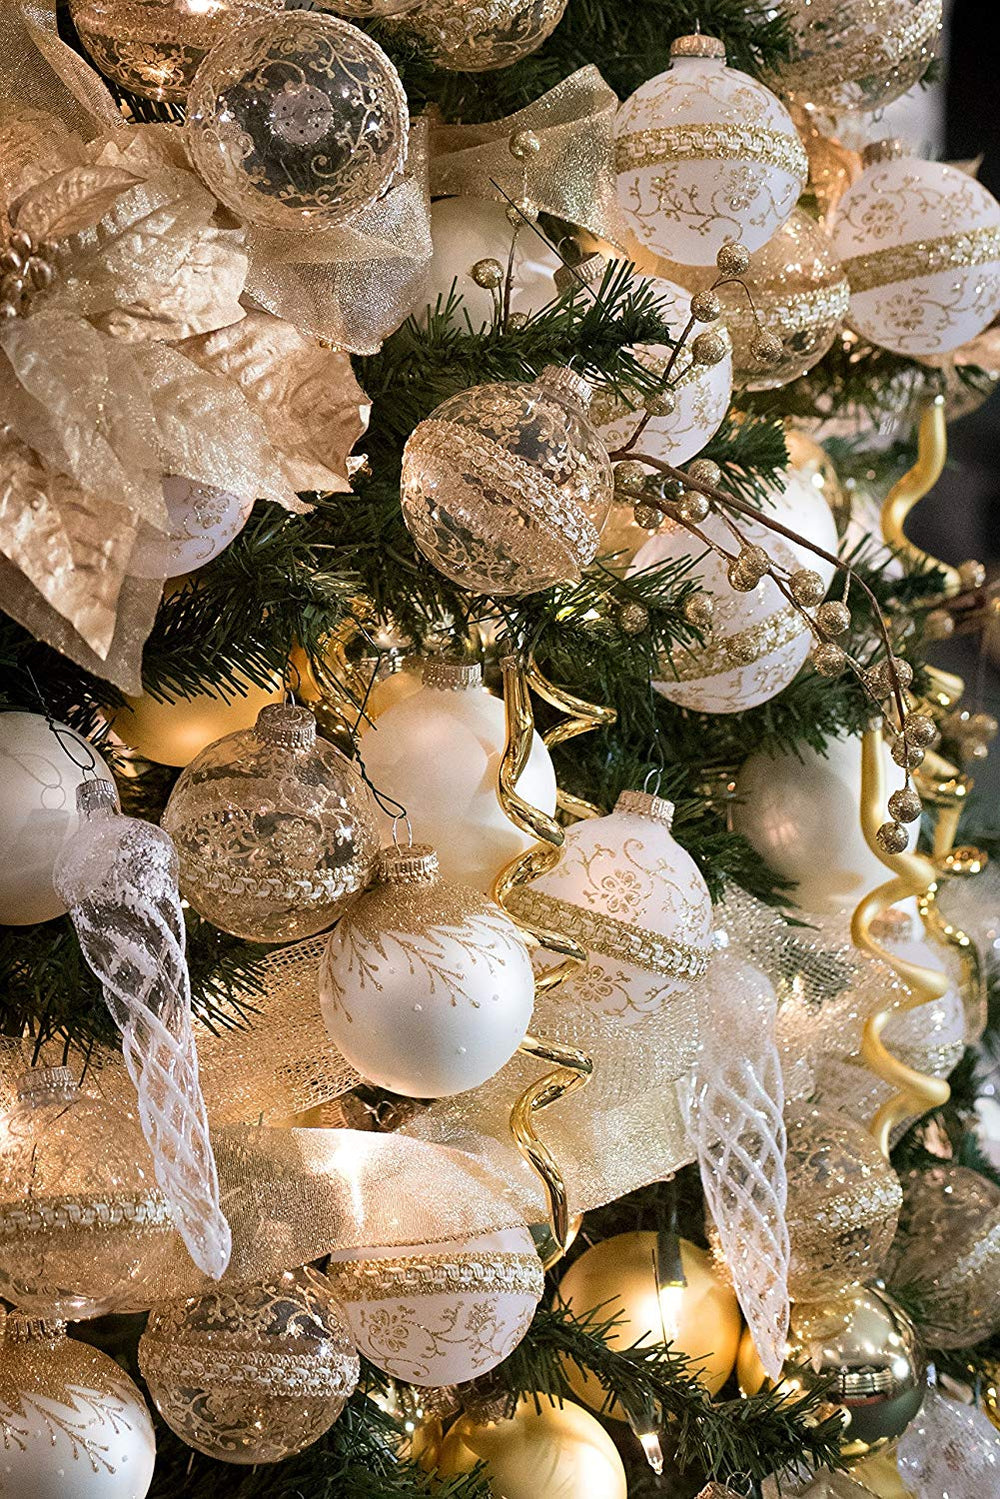 Classic Gold Glass Ornament Decorating Trimkits on a tree